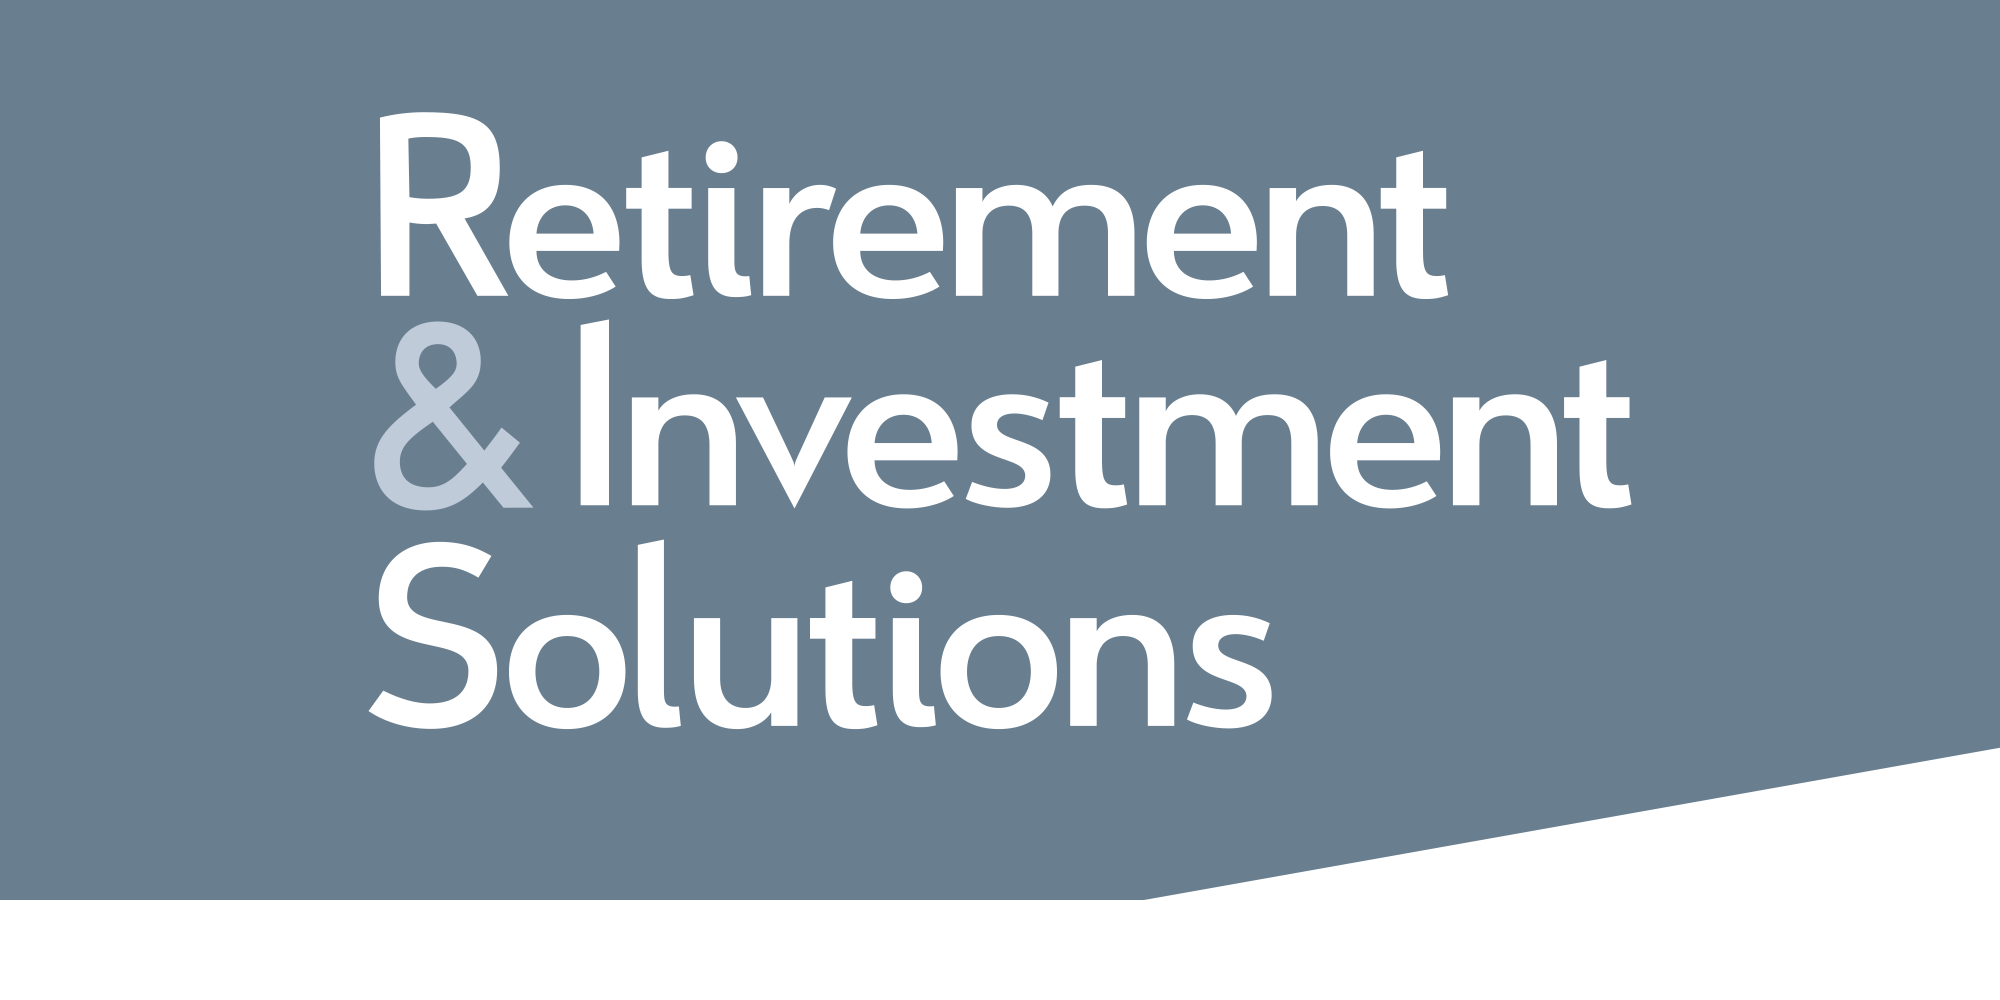 Retirement & Investment Solutions